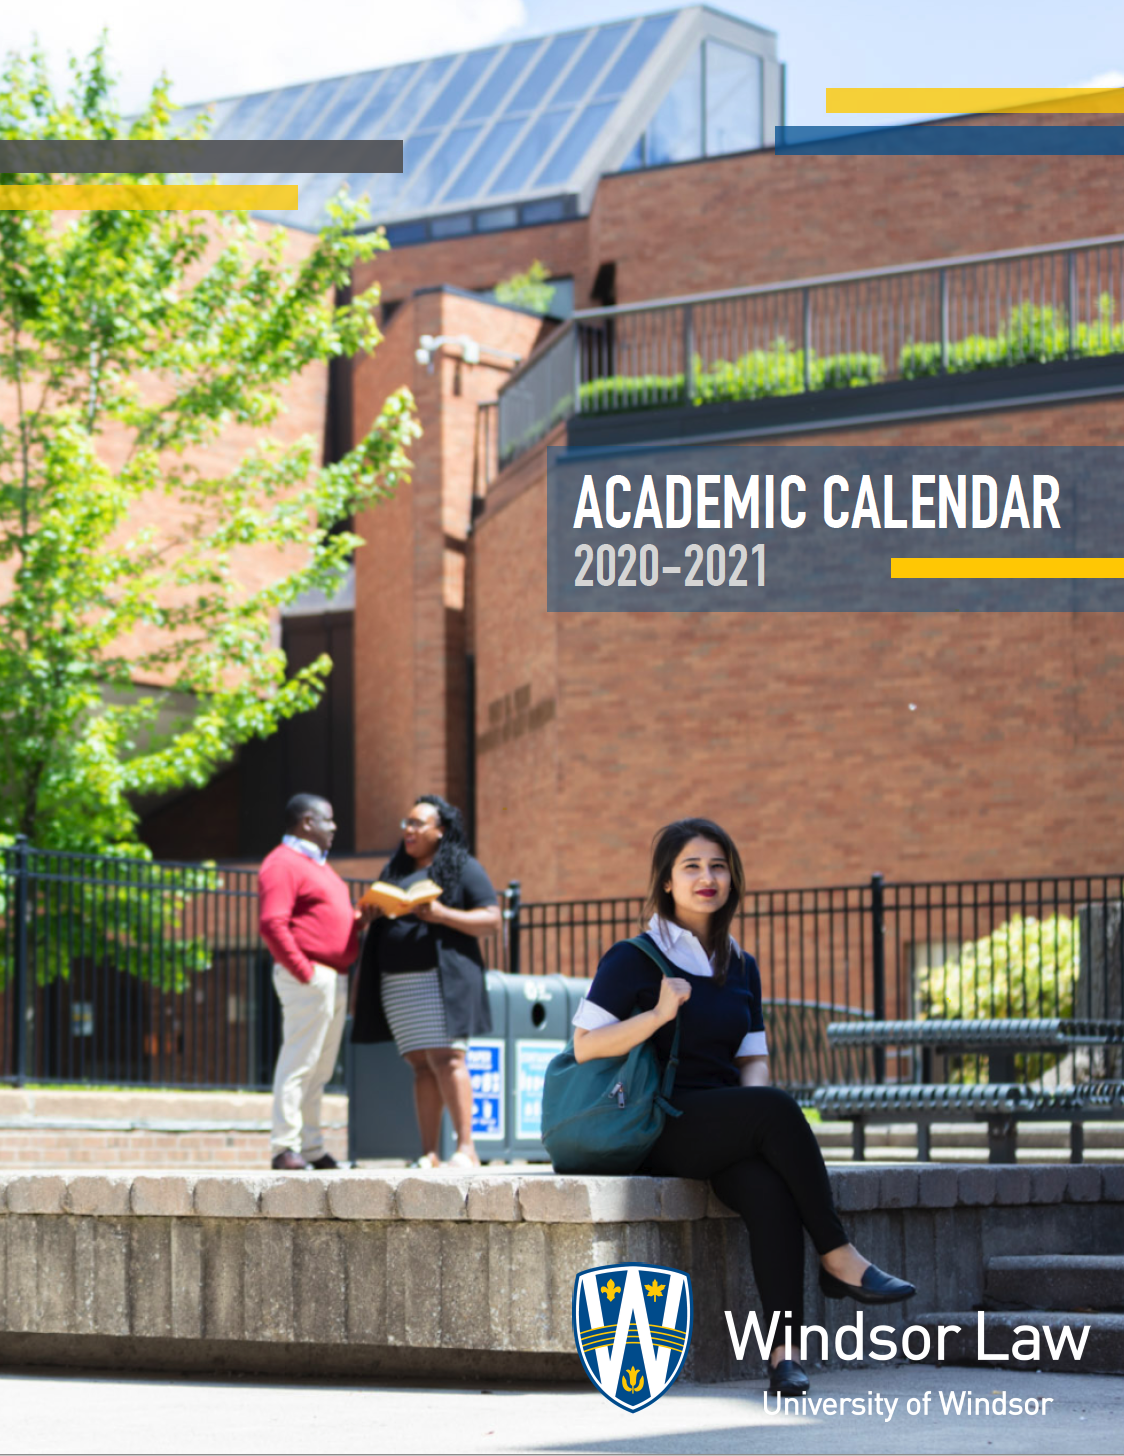 Academic Calendar Cover Page